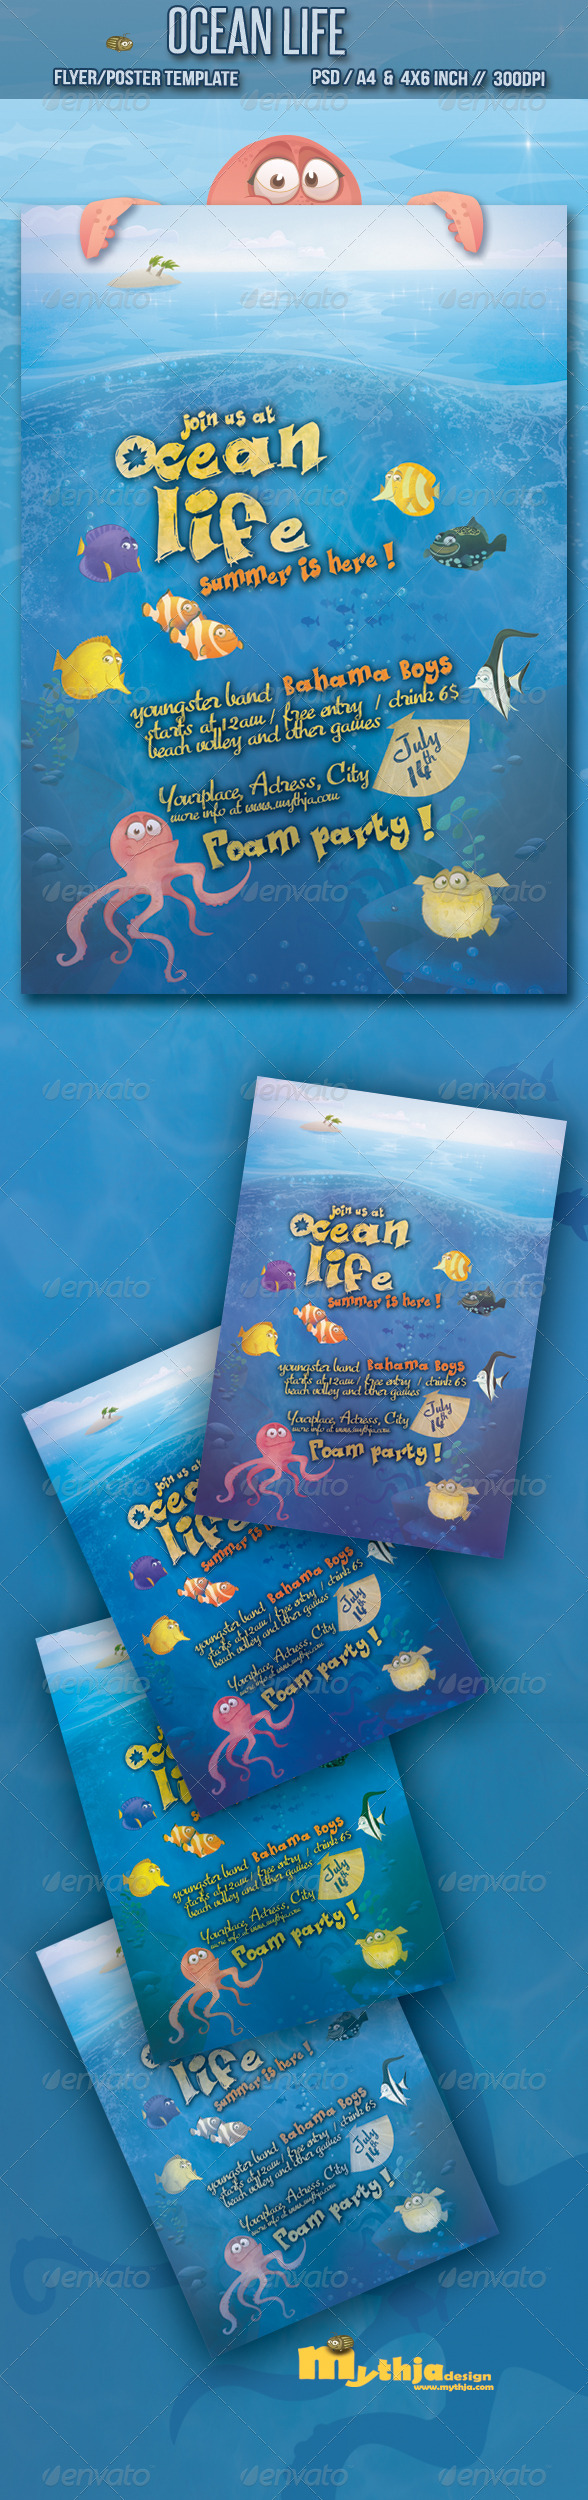 Ocean Life - Flyer/Poster Template - Flyers Print Templates